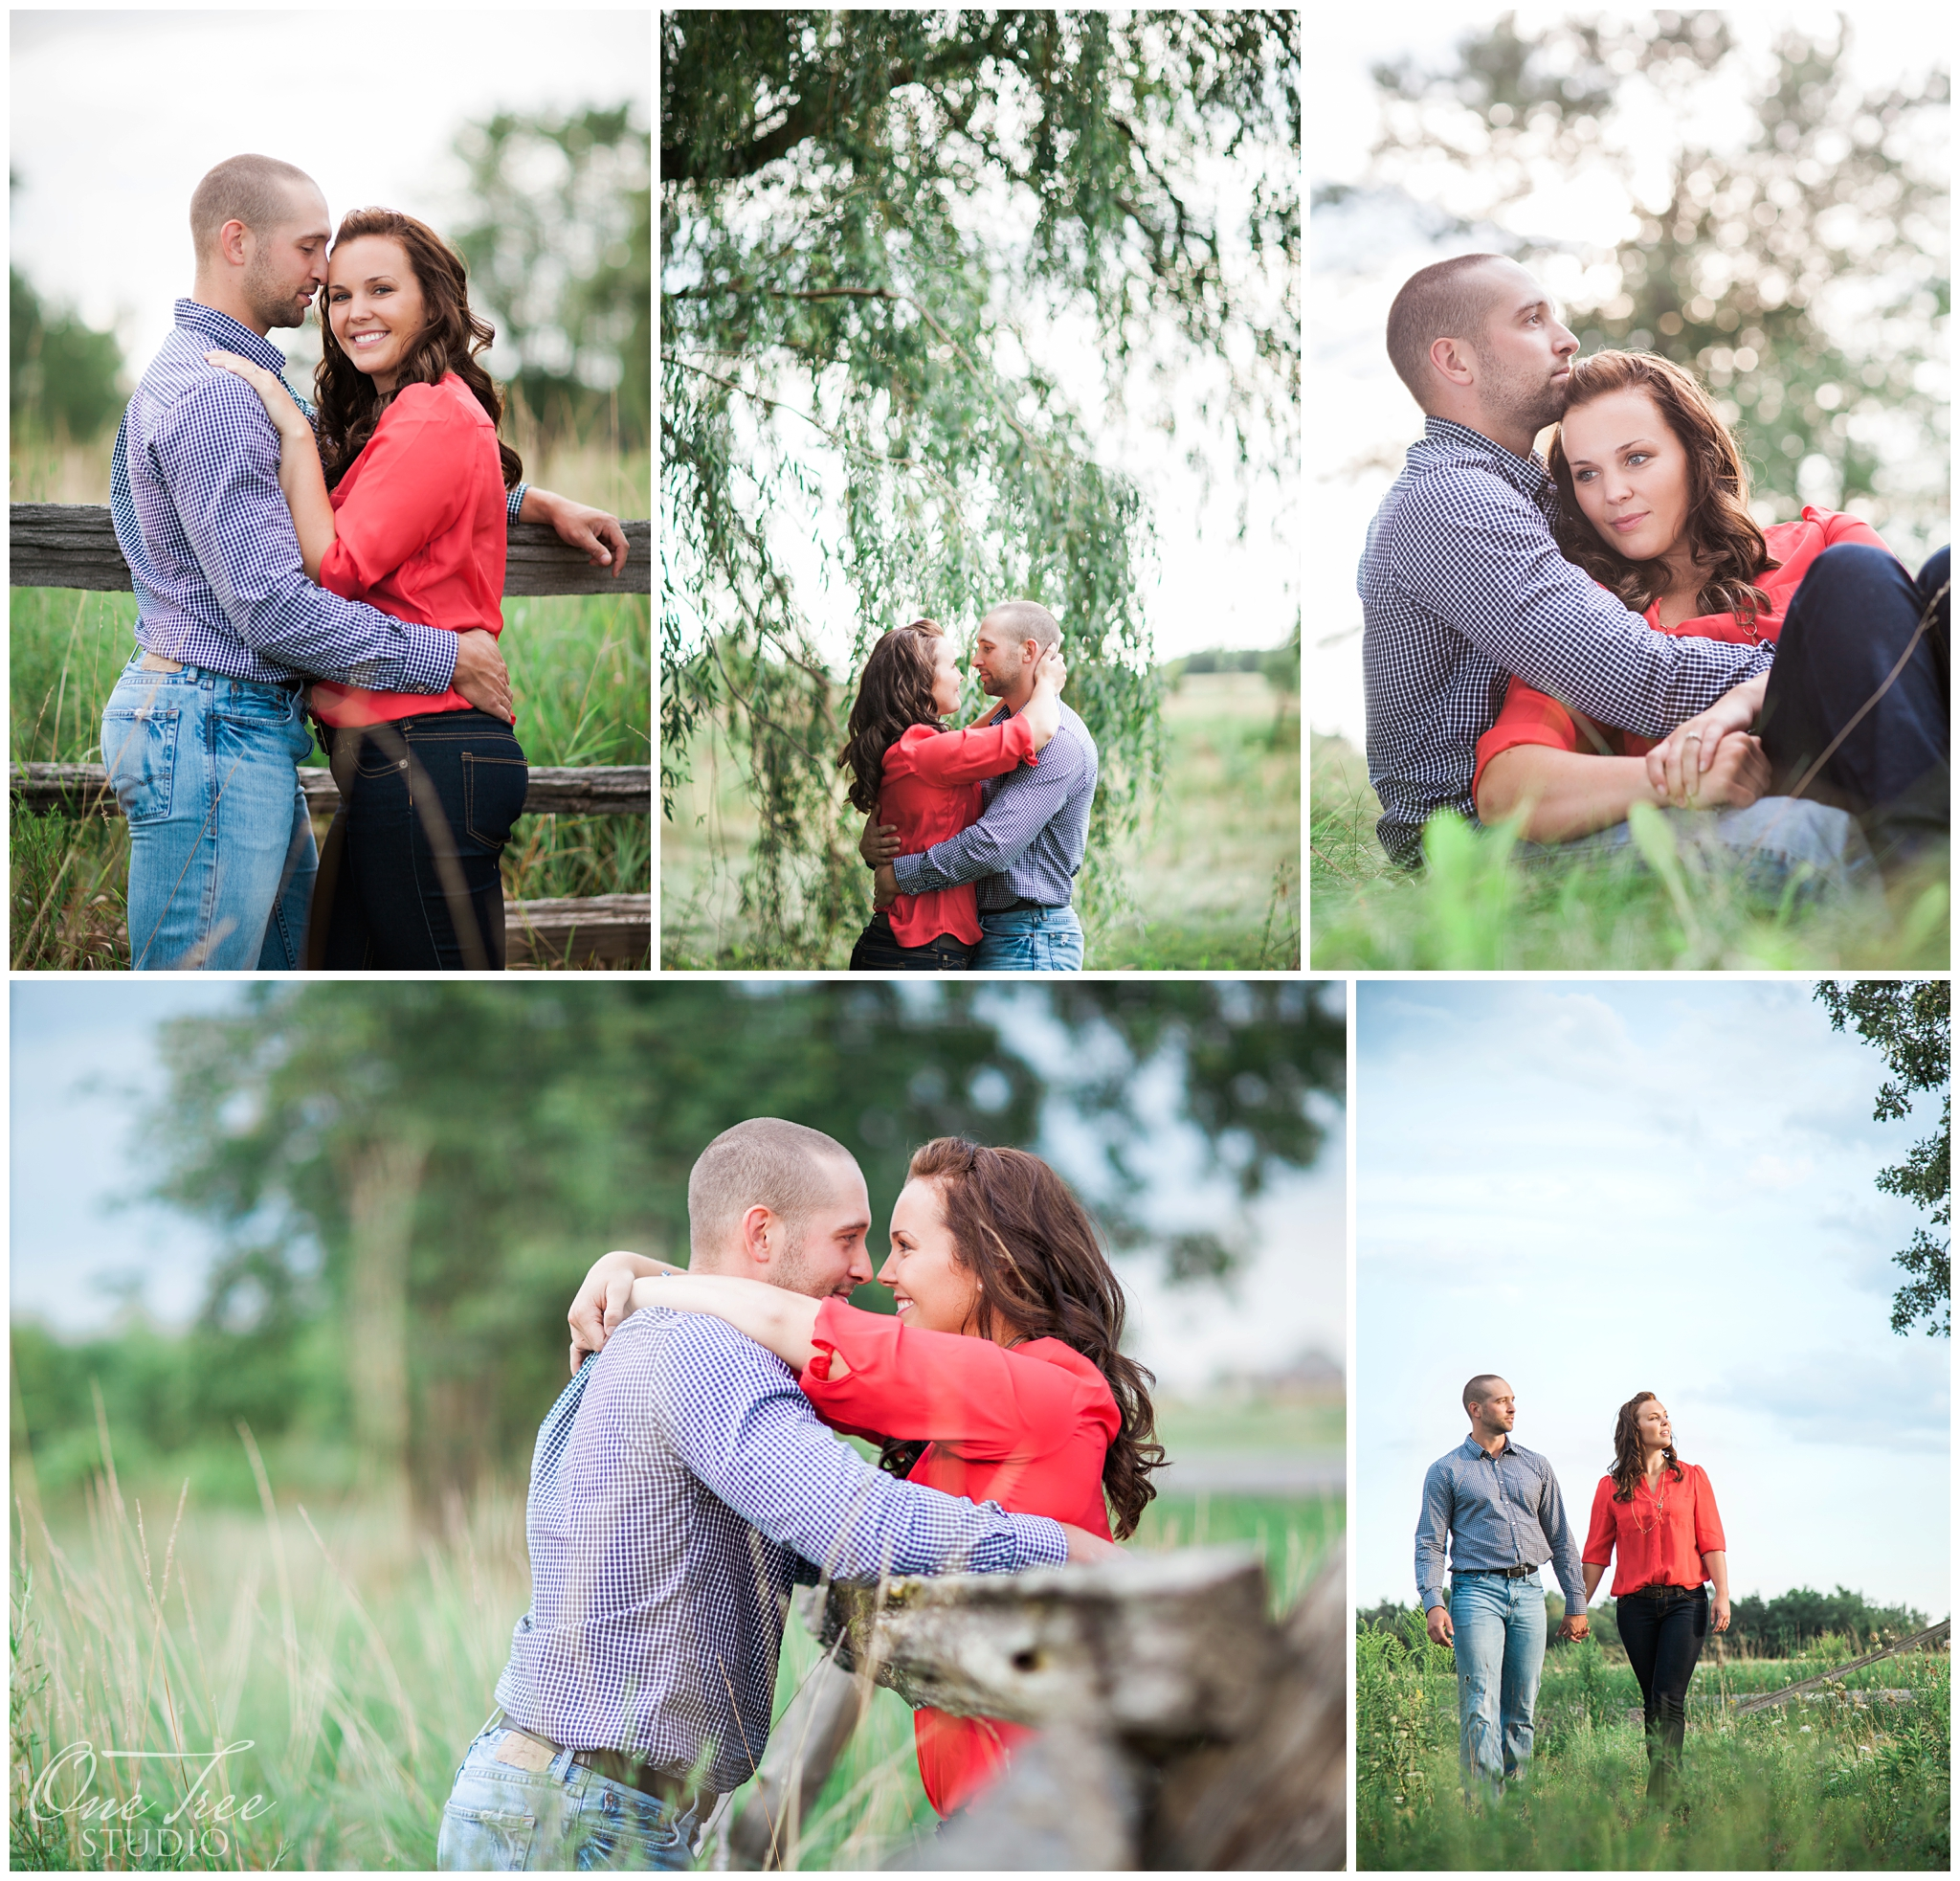 Chad + Carrie   Engagement and Wedding Photographer   Markham and the GTA